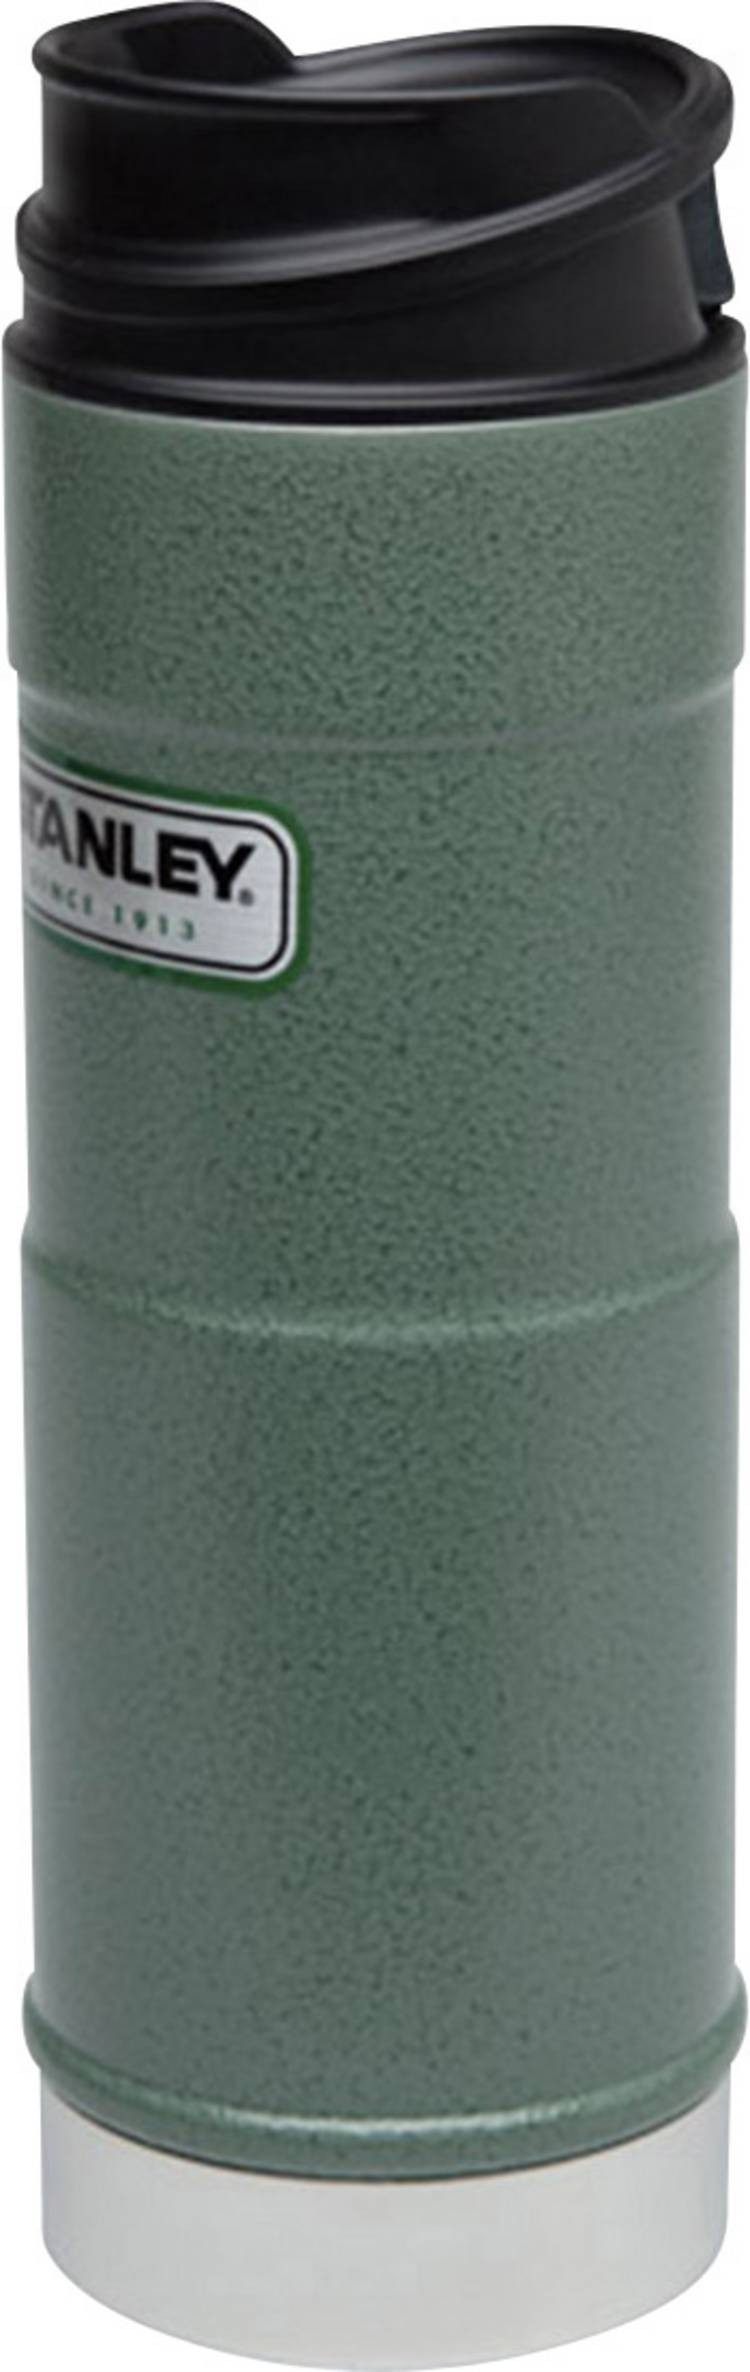 Stanley Classic 10-01394-007 Thermosbeker Groen 470 ml